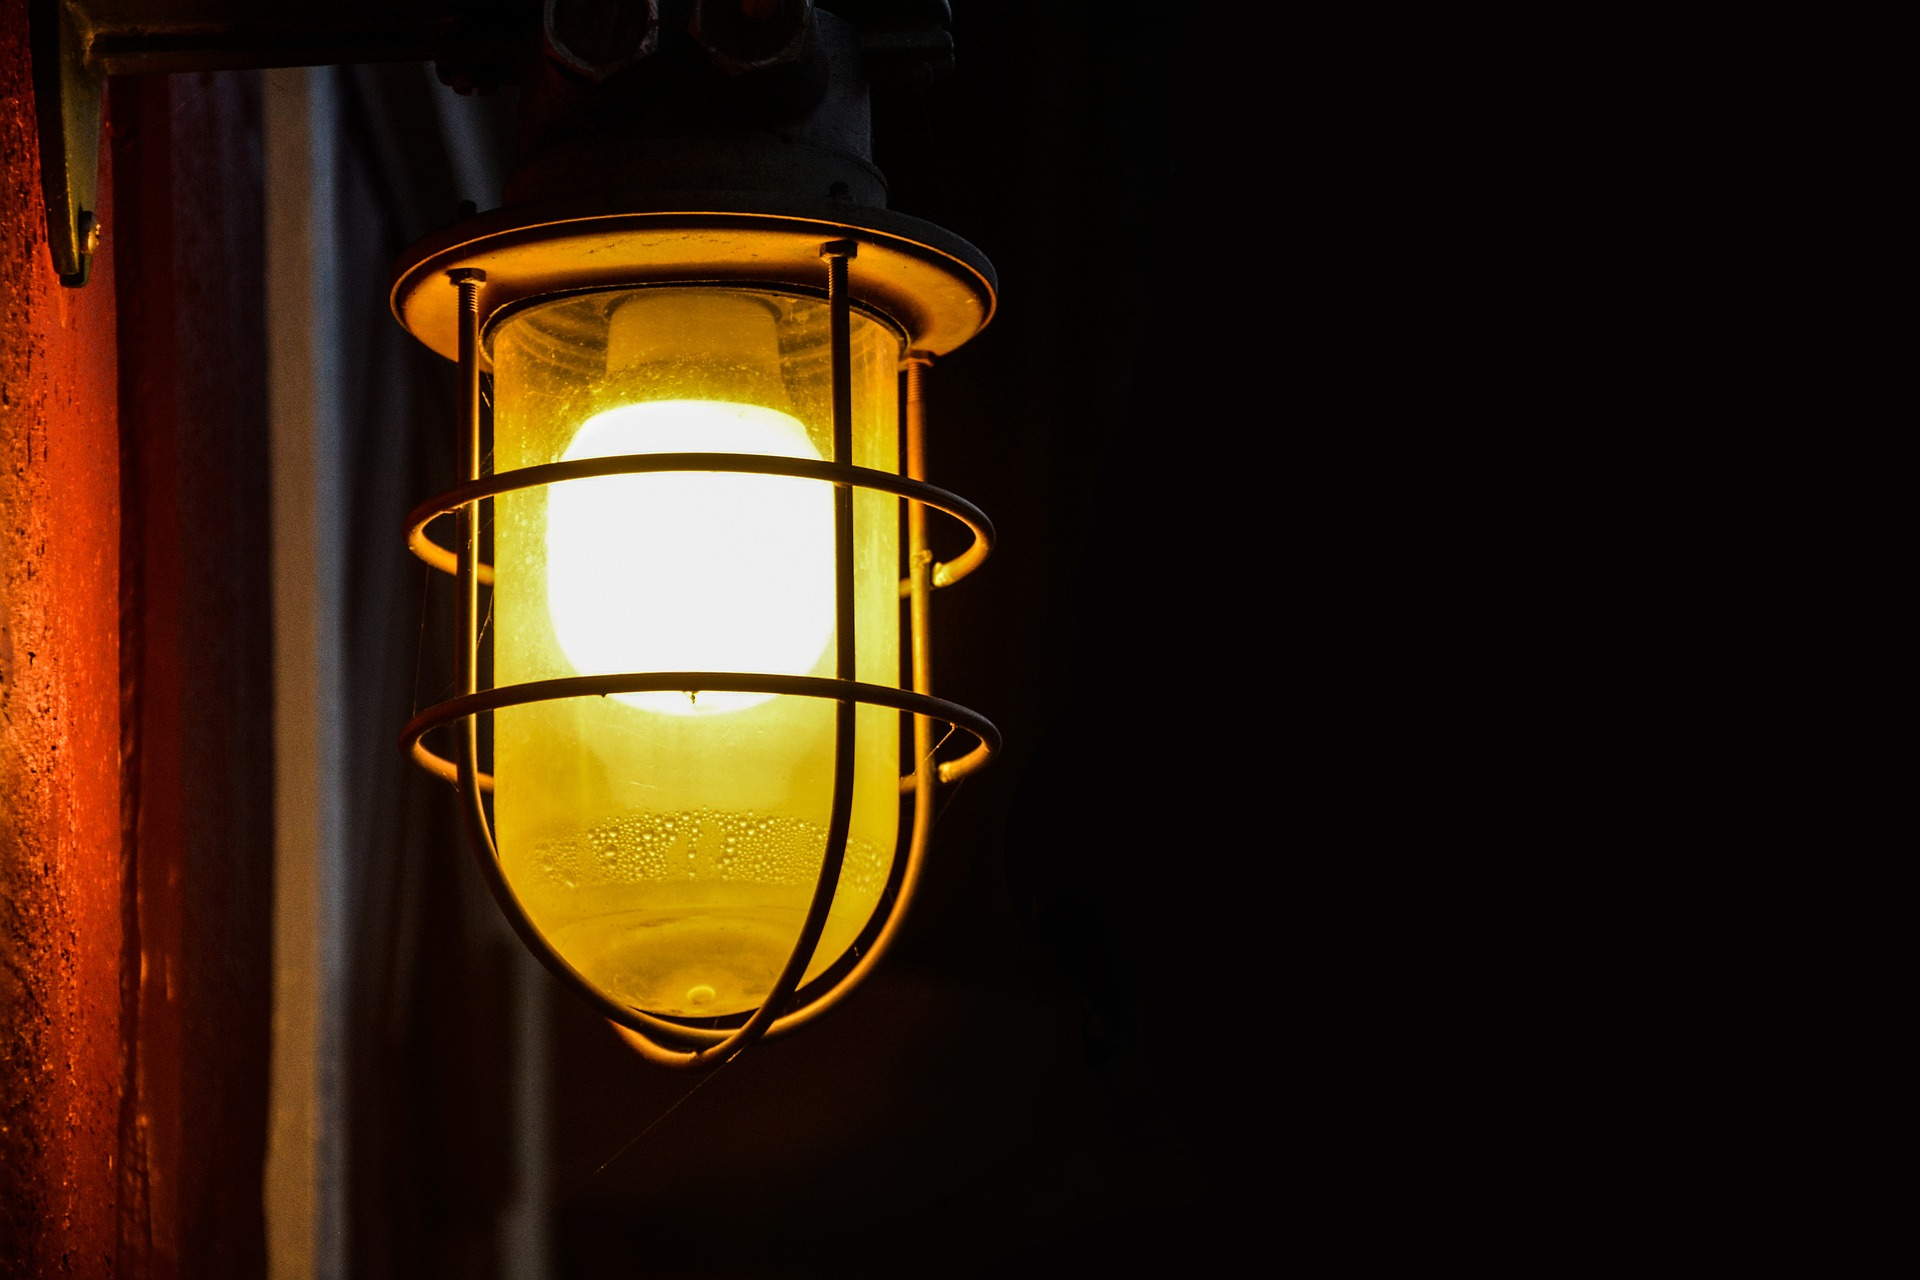 Now is the time to install outdoor lighting on your house.